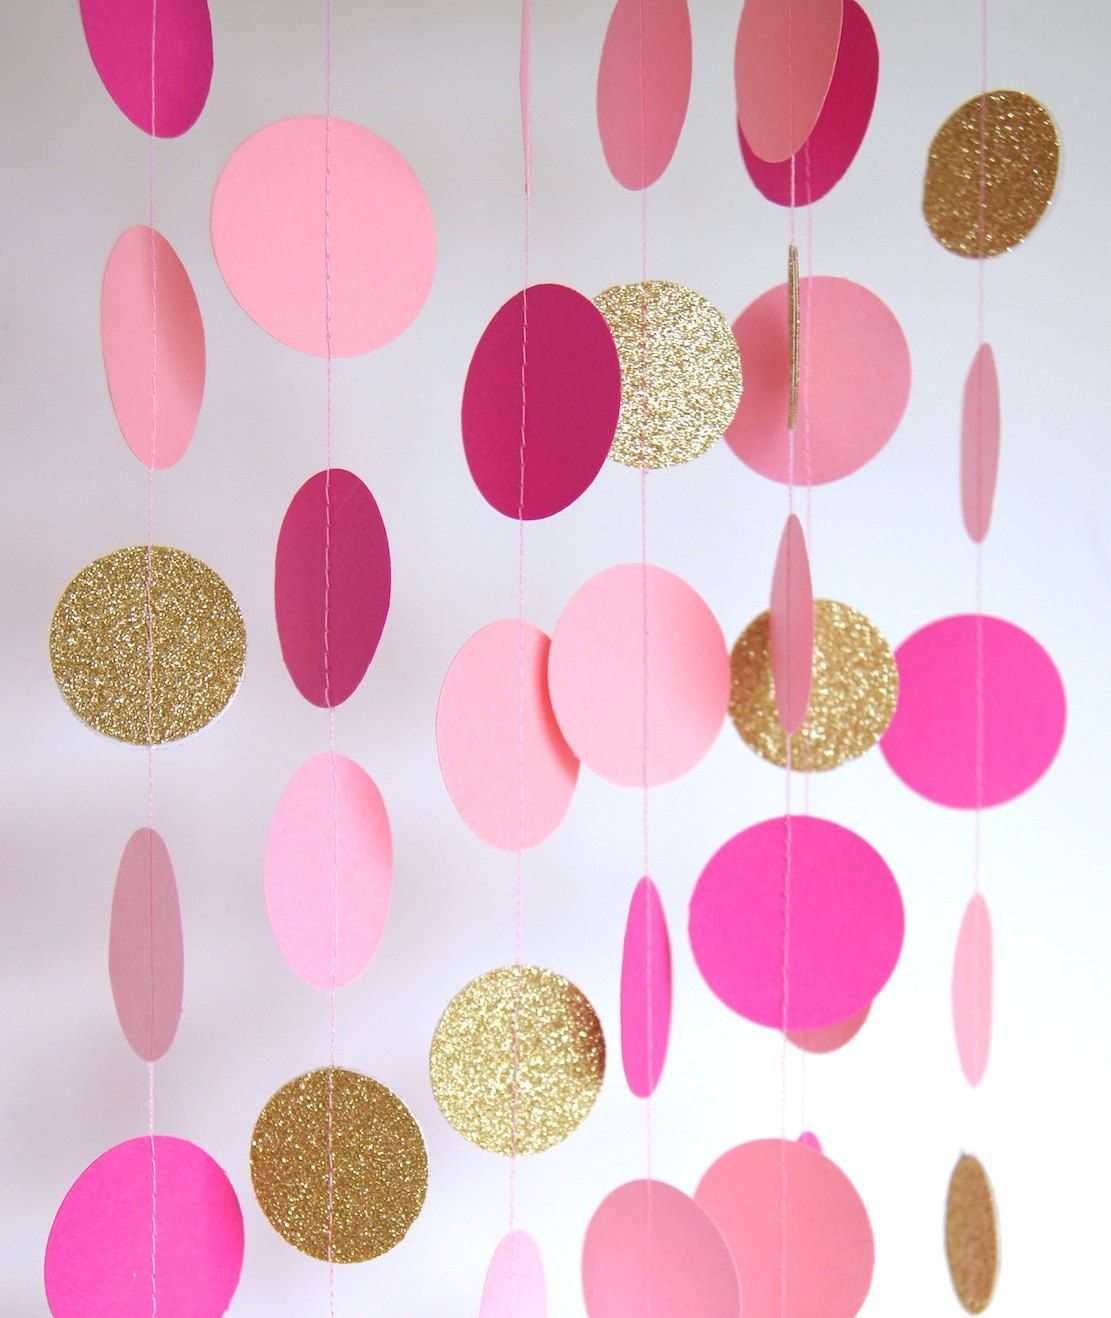 garland paper garland in hot pink rose blush and gold bridal shower baby shower birthday decor pink and gold birthday pink wedding pinkwedding paper